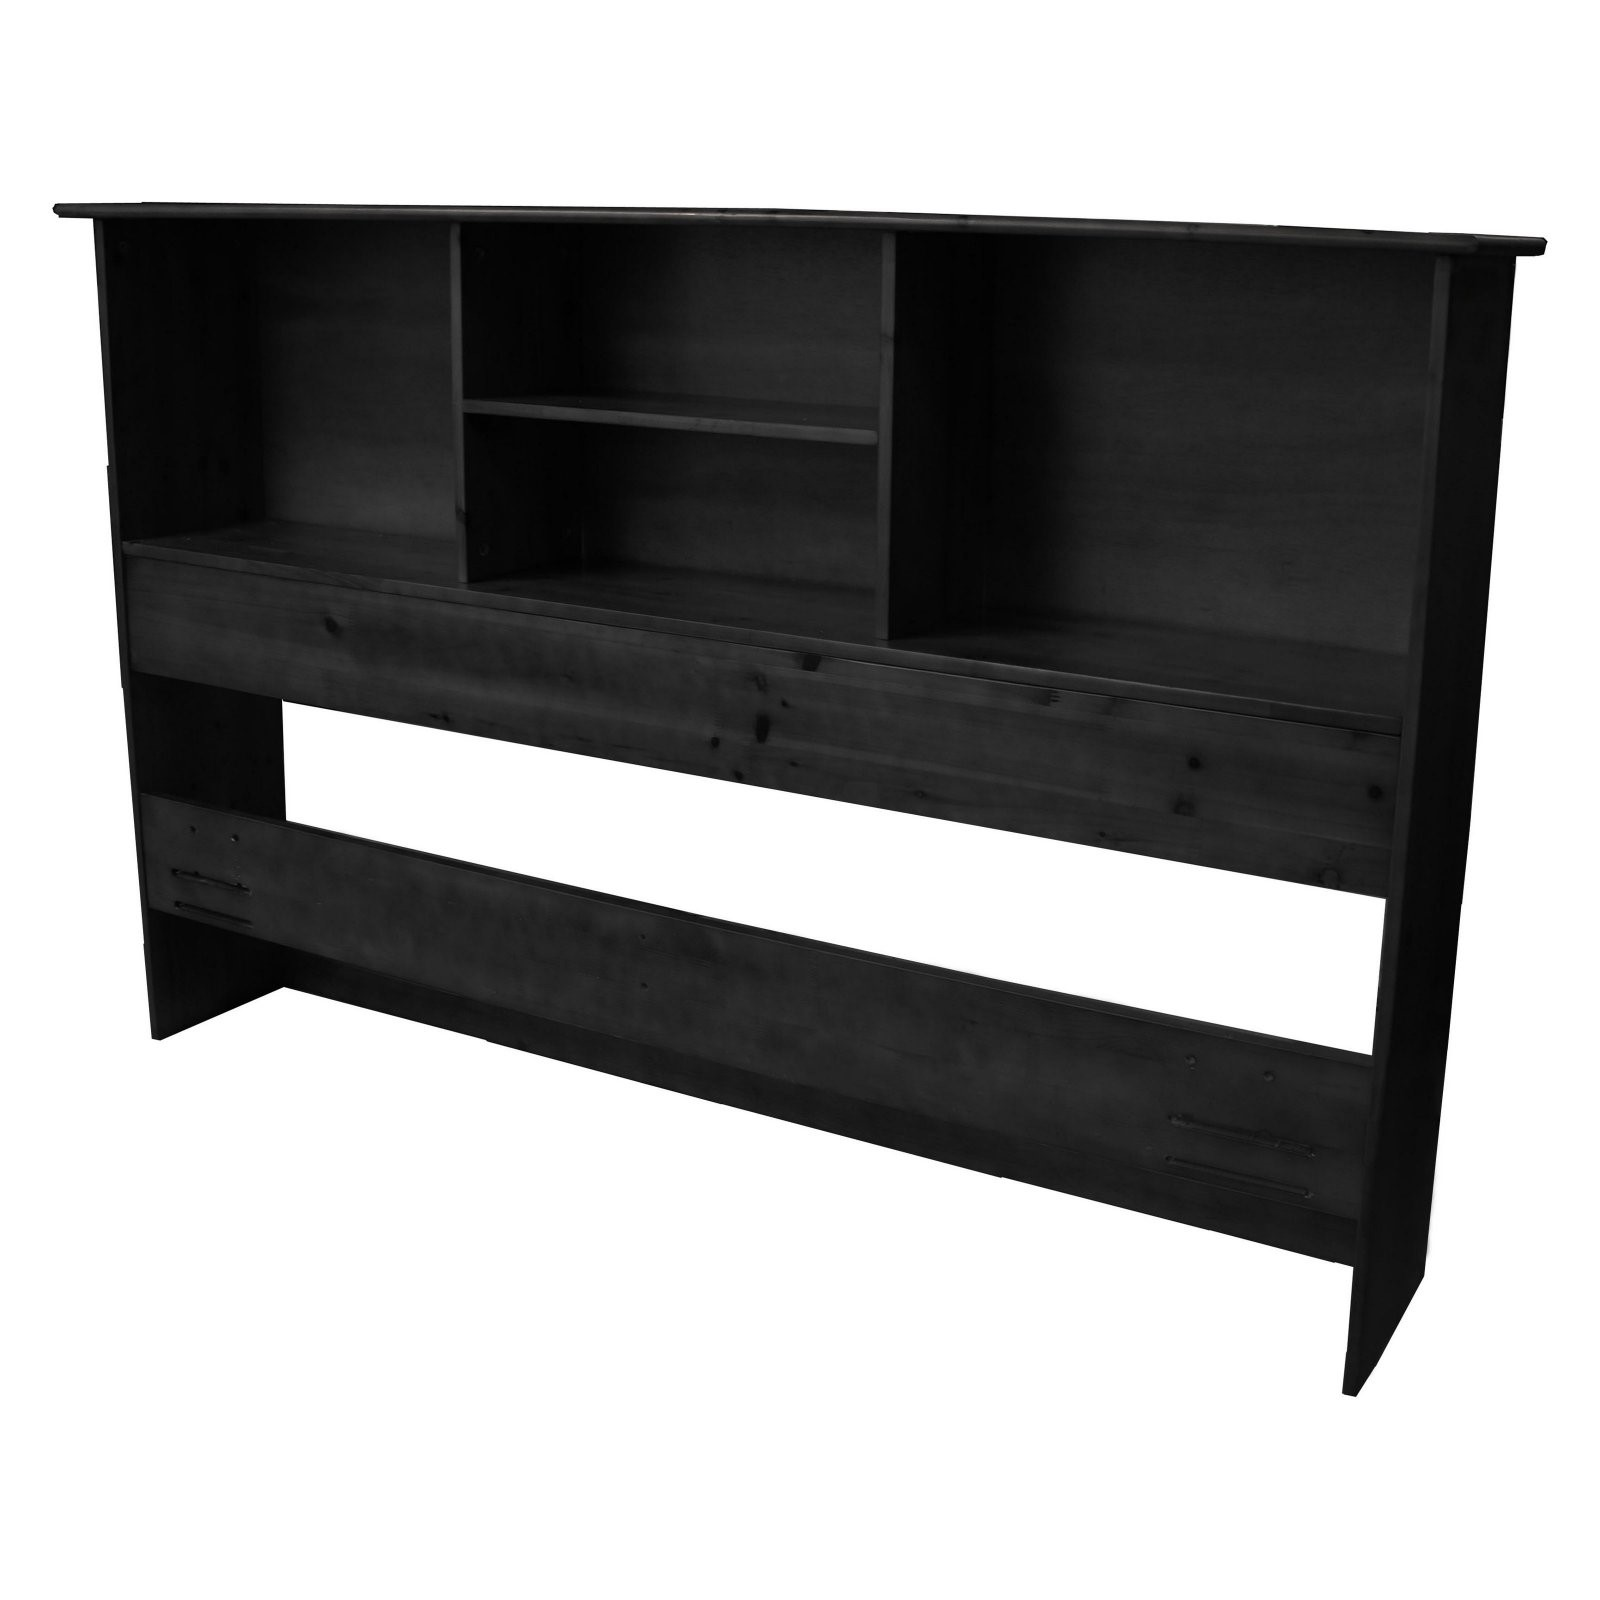 Epic Home Furnishings Oslo Bookcase Headboard